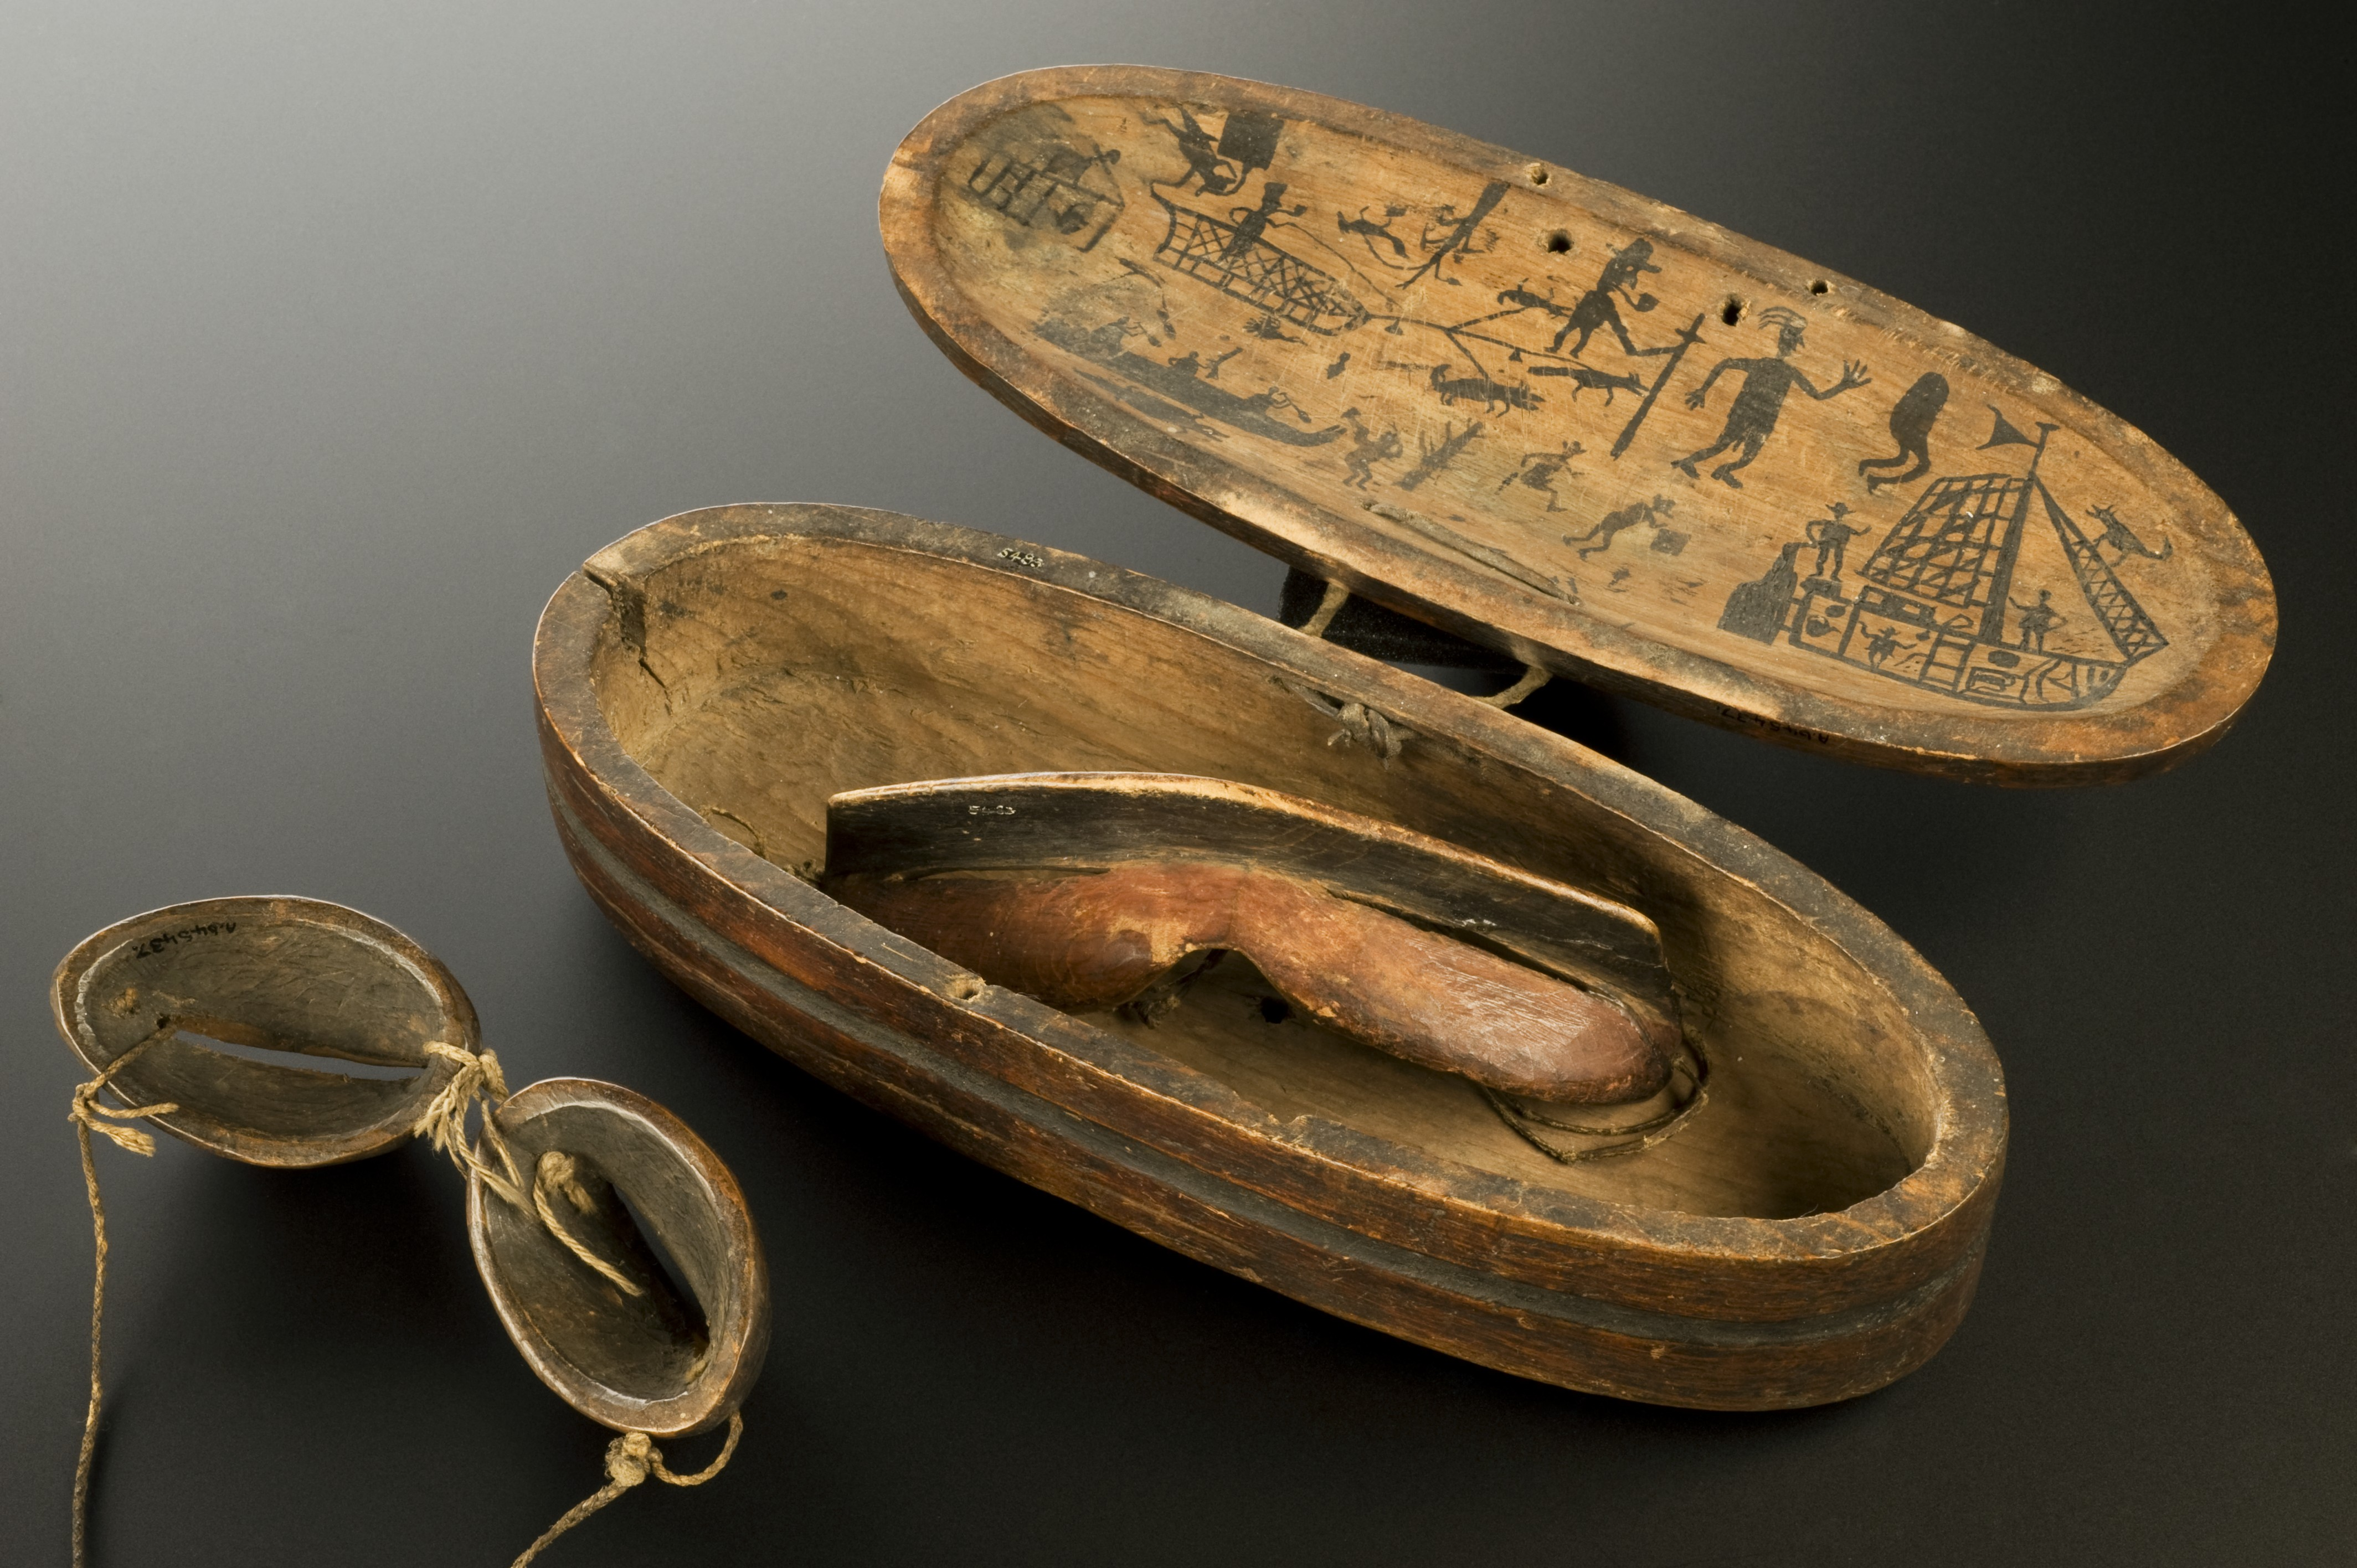 In the center, there's a wooden case with delicate drawings about hunting and ships. It holds a snow goggle, which has with very thin slits for the eyes. On the bottom left is another snow google, as seen from behind, with ropes mainting the pieces in place